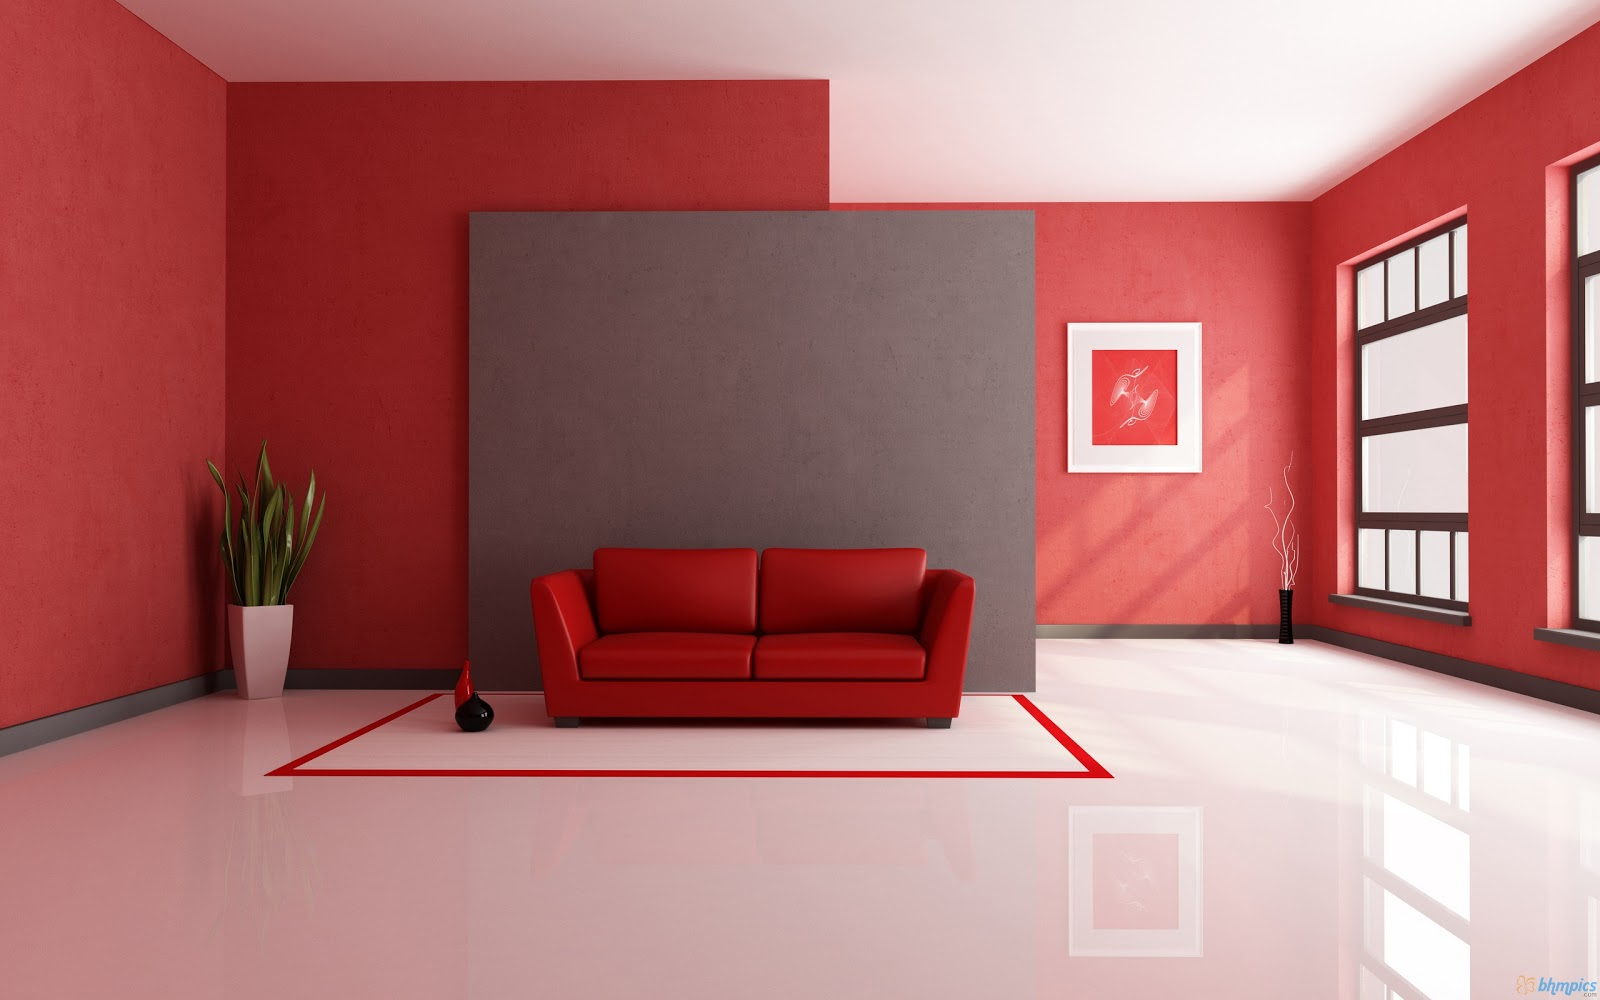 this is a long red setting for interior decors